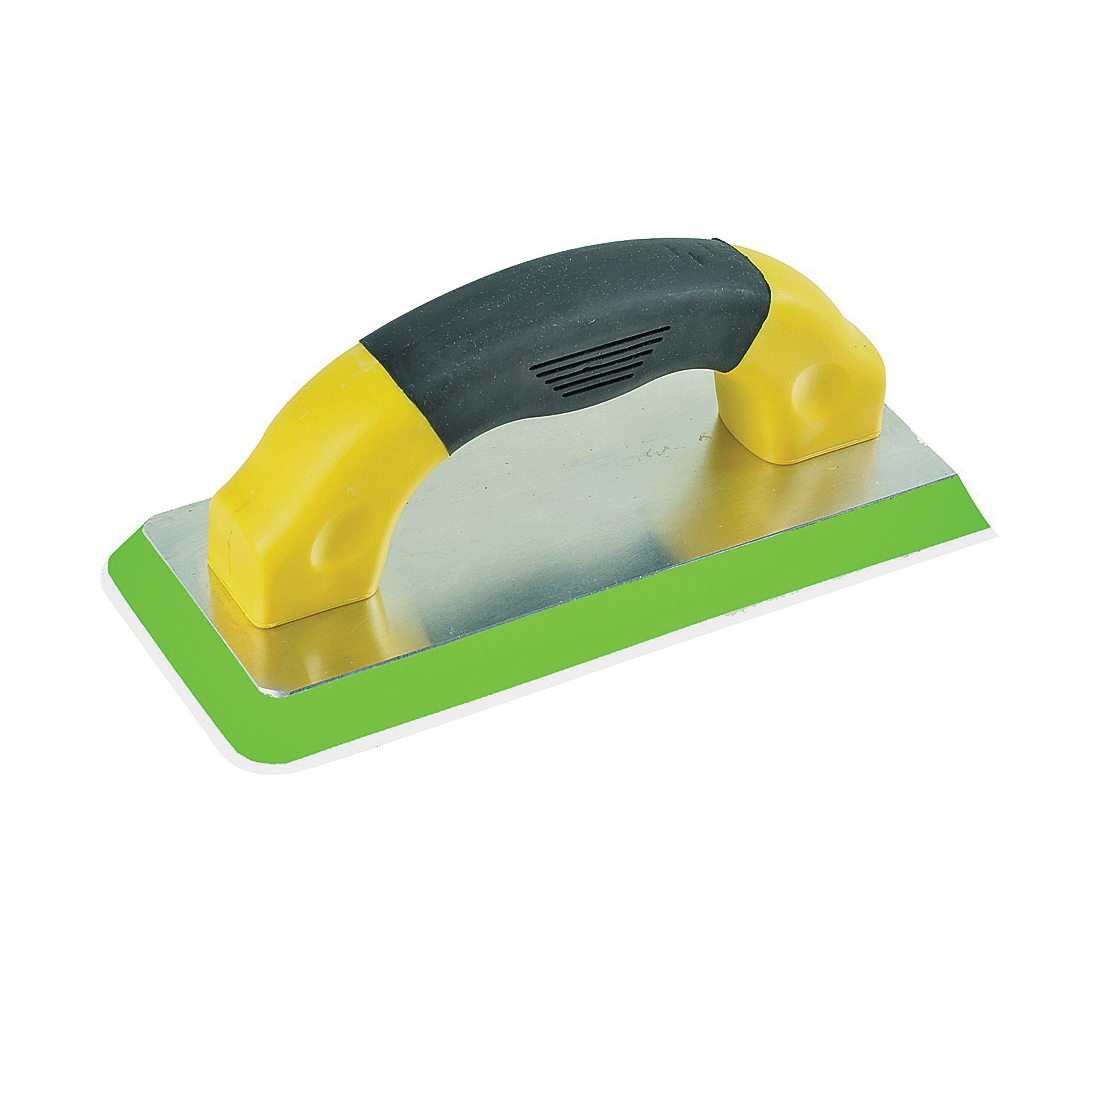 Picture of M-D 49829 Grout Float, 9 in L, 4 in W, Comfort-Grip Handle, Rubber, Black/Green/Yellow